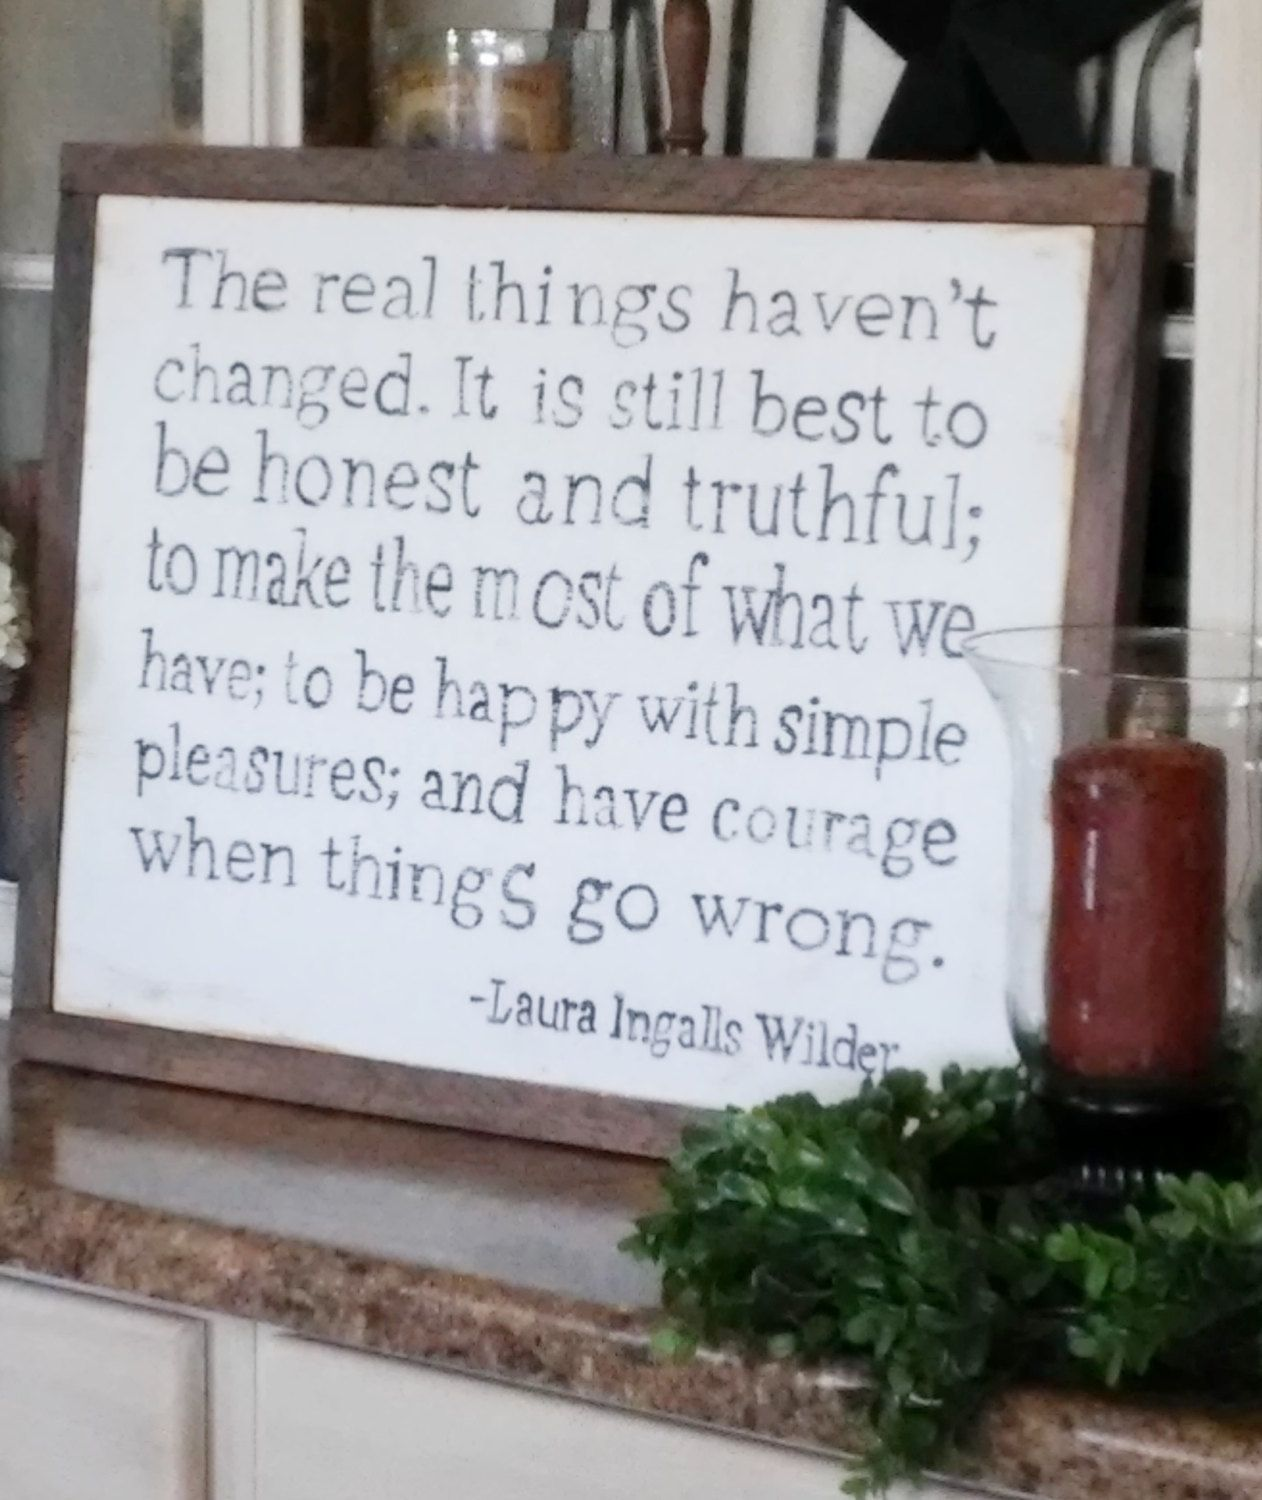 Laura Ingalls Wilder Quote Wood Framed Sign by WillowHillSigns on Etsy